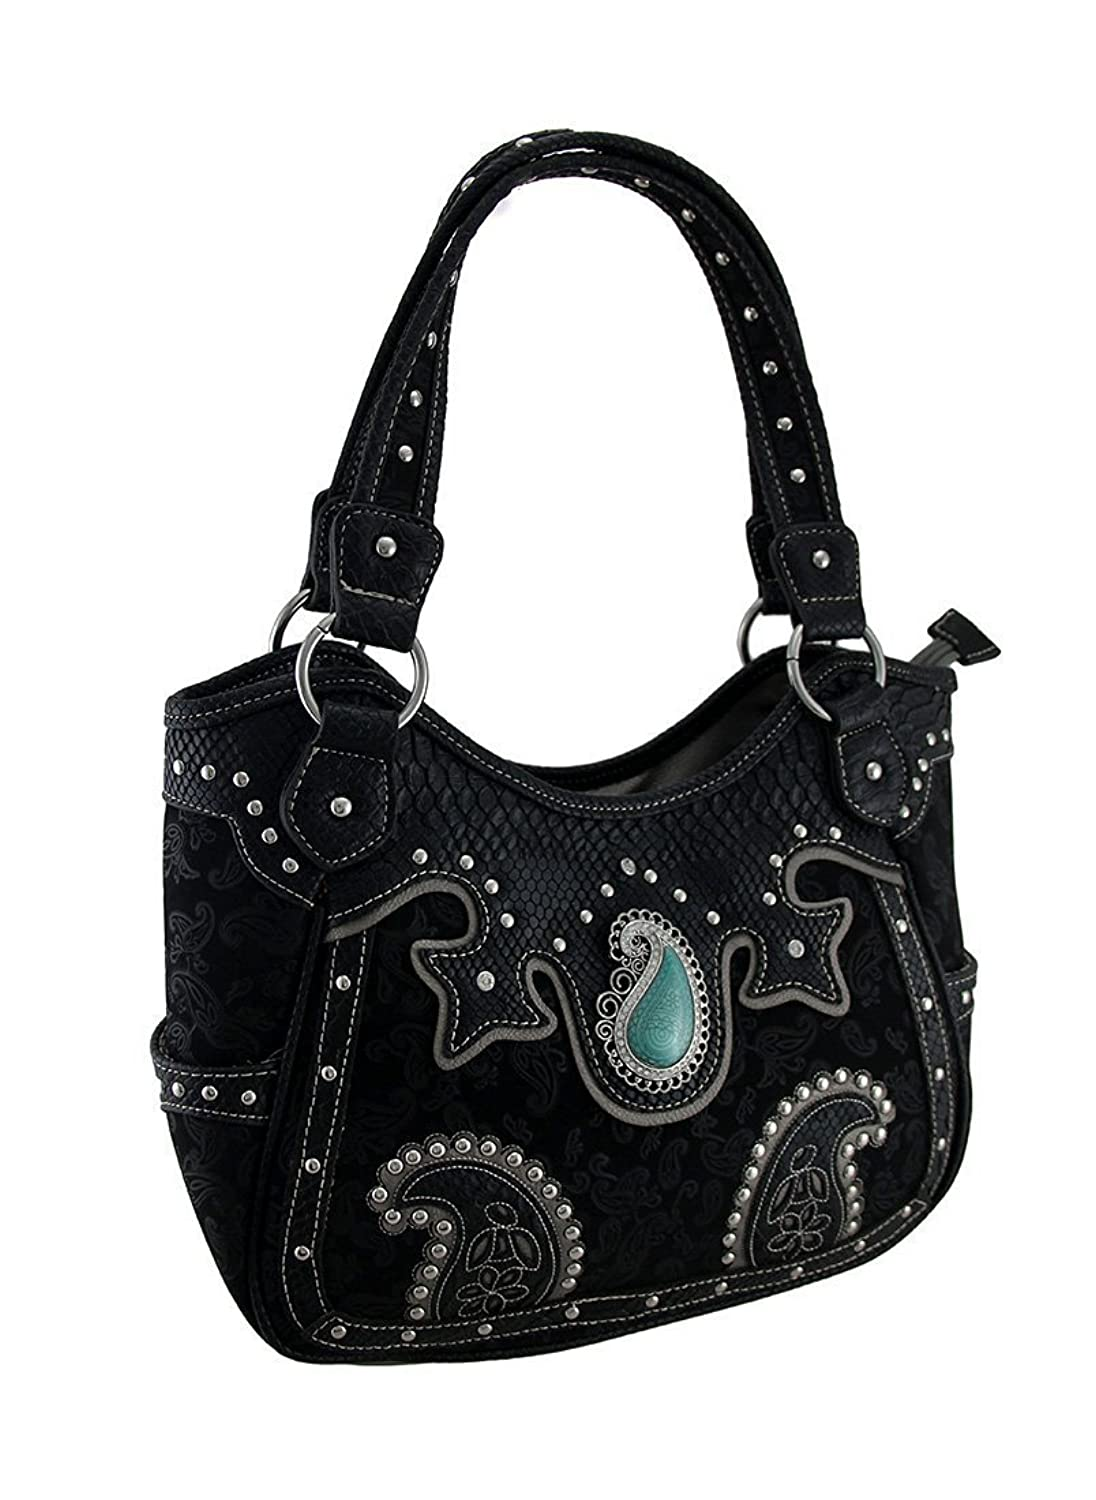 Paisley Motif Metallic Trim Studded Concealed Carry Handbag